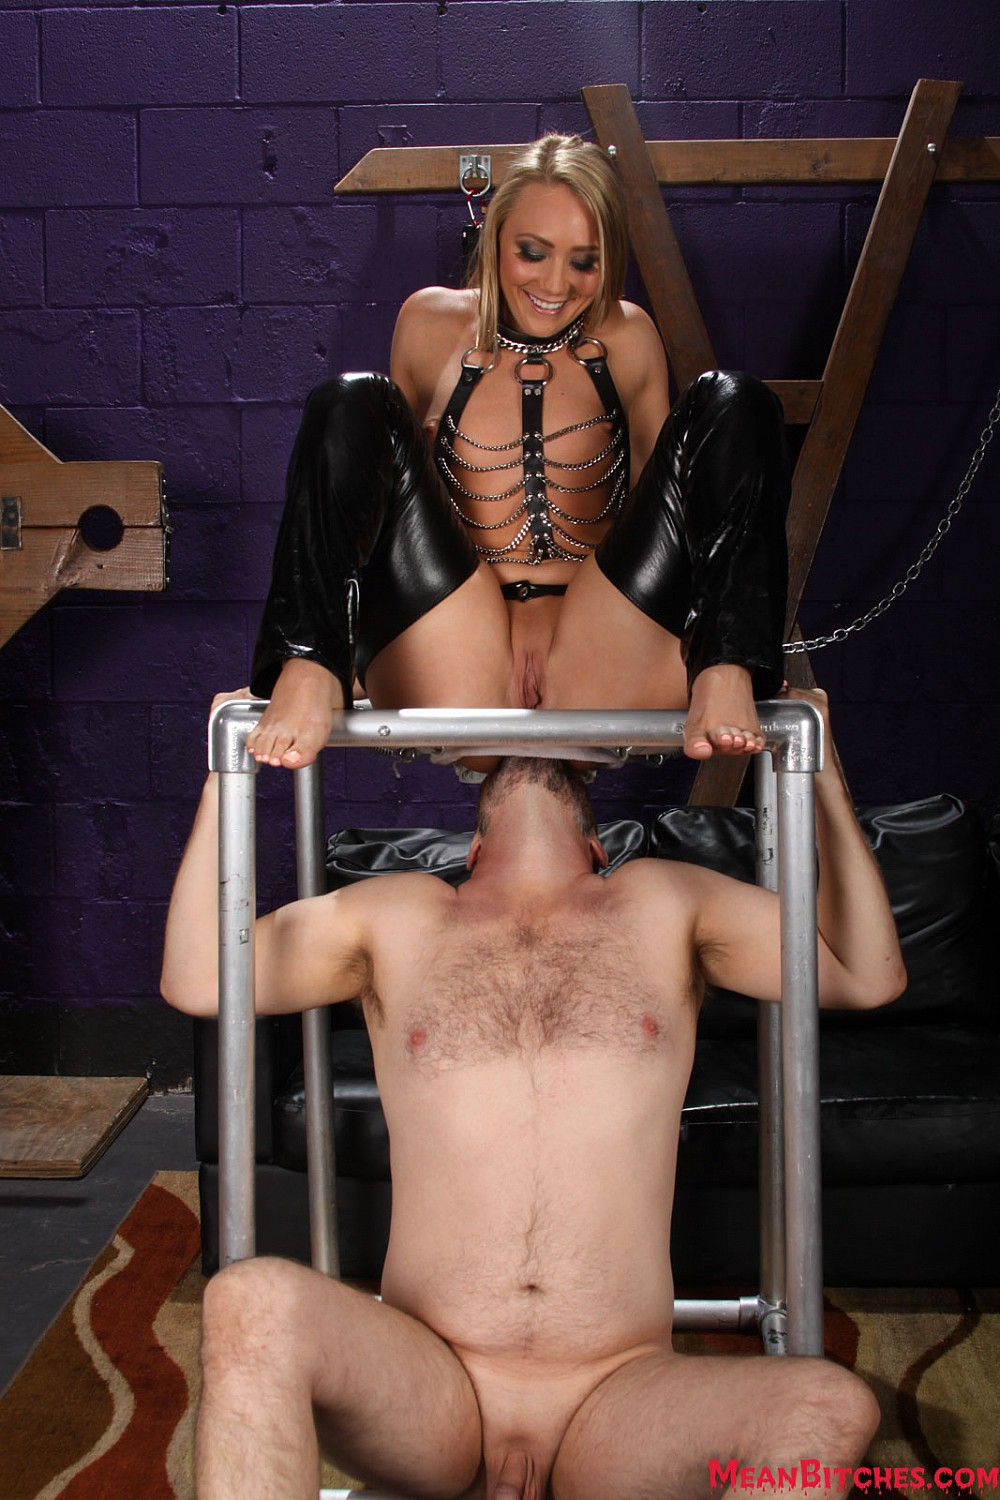 Watch or Download - MeanWorld - MeanDungeon - AJ Applegate 3 - ass smother, butt drops, woman - Release [23-08-2016]